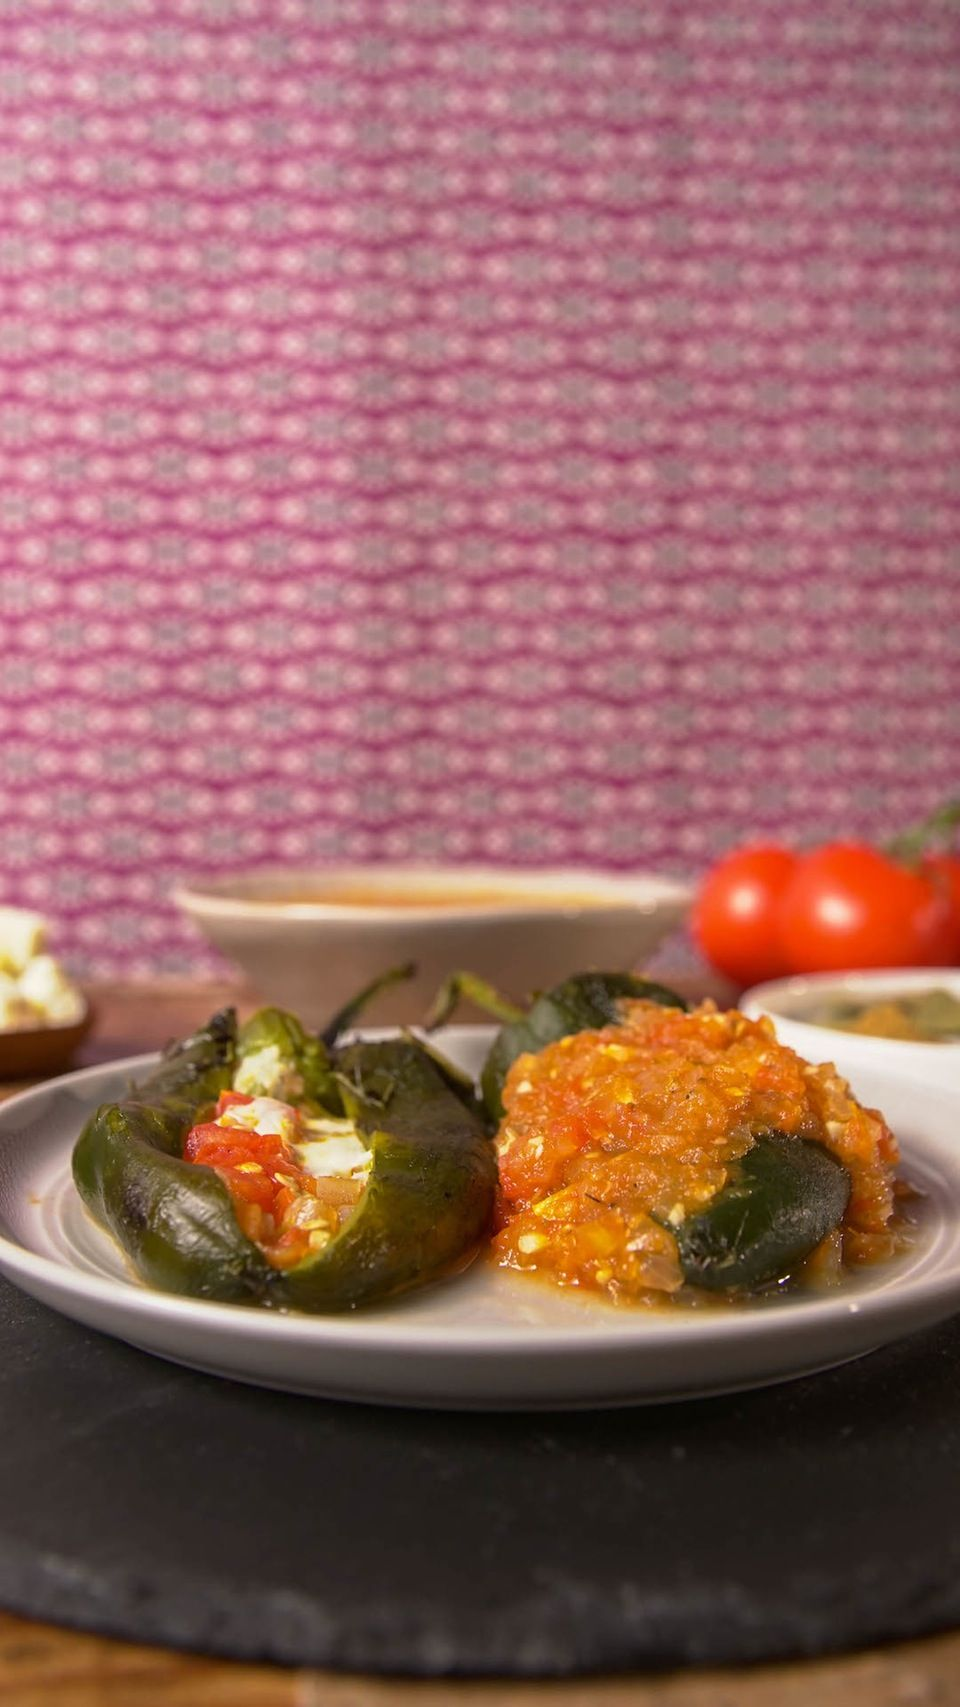 Recipe with video instructions: Chile rellenos are what happen when jalapeño poppers try adulting. Ingredients: 3 poblano peppers, About ½ lb of Oaxaca cheese (or any melting cheese of your choice), 2 ½ medium tomatoes, chopped, ½ chopped onion, 1 tsp oregano, ½ tsp cumin powder, Salt to taste, 2 squares of powdered chicken bouillon, A few bay leaves, Olive oil, to simmer sauce